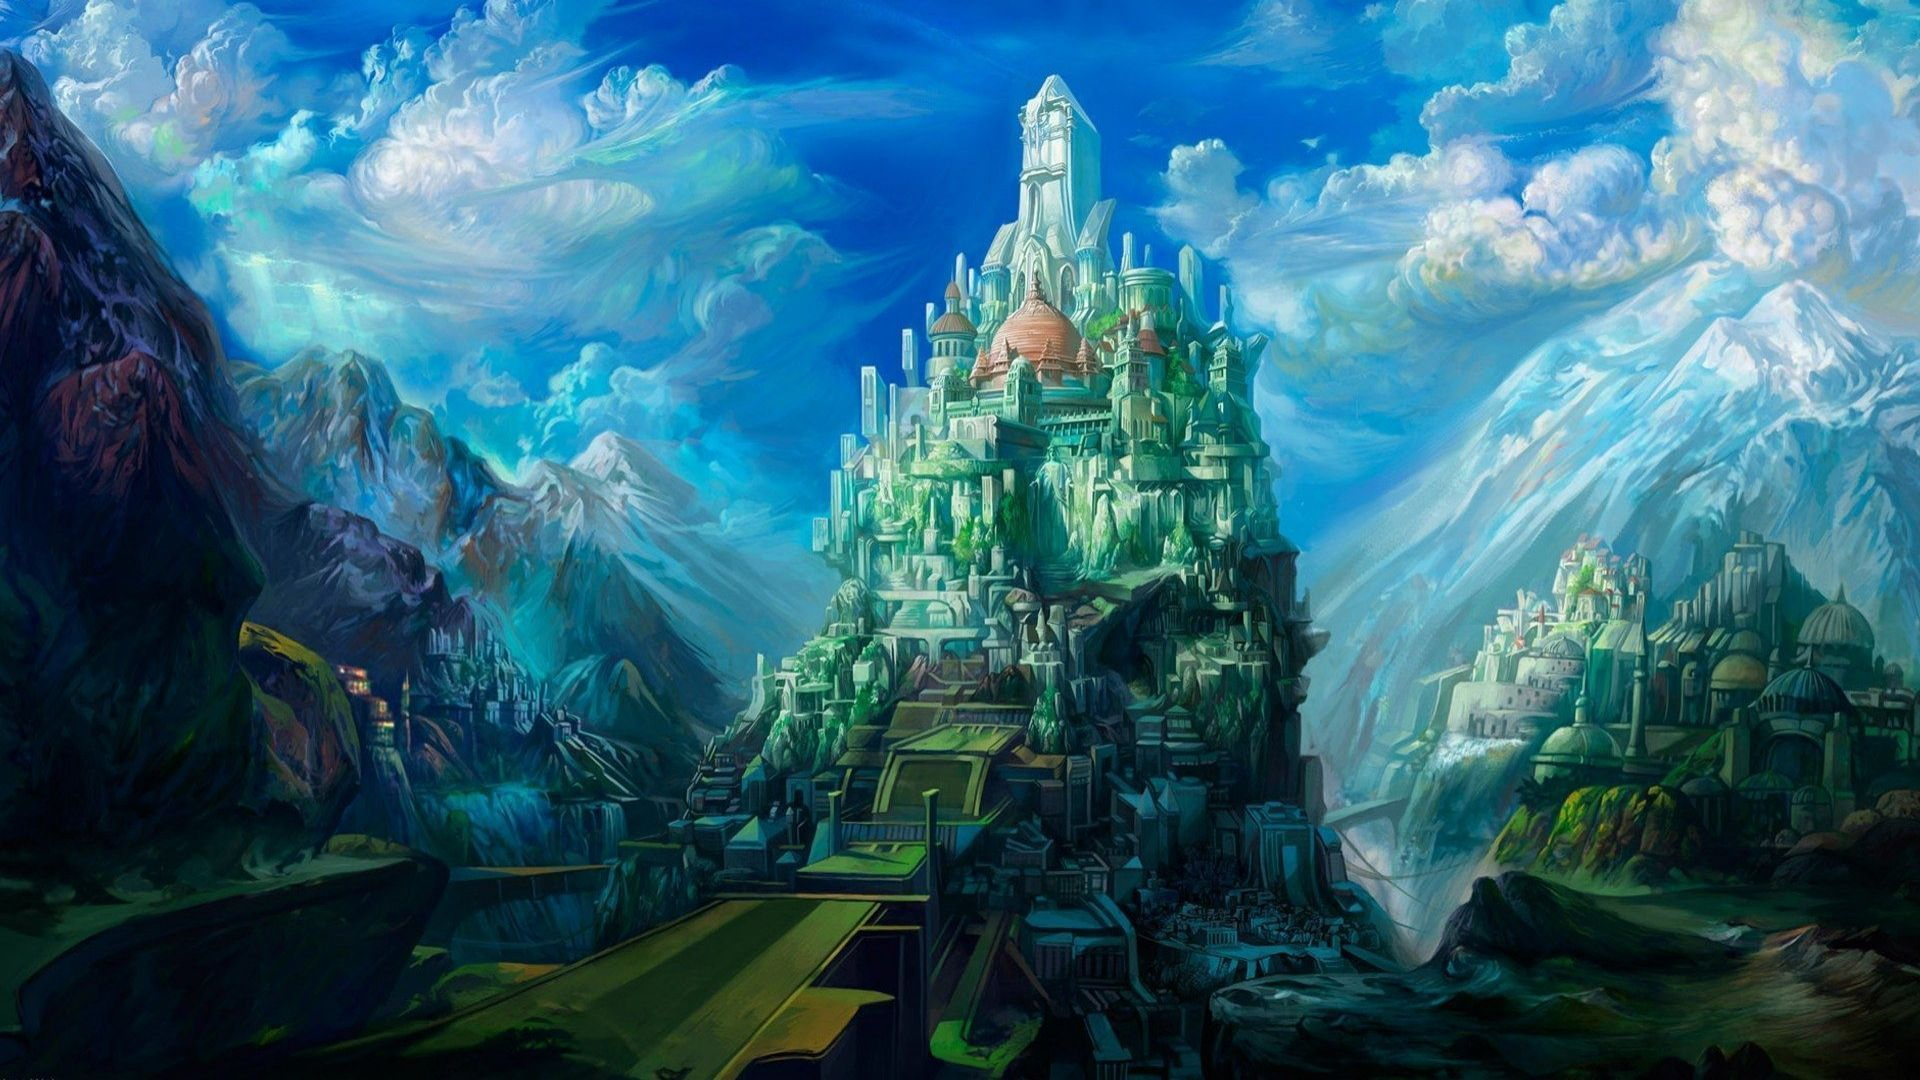 hd fantasy wallpapers p wallpaper | wallpapers | pinterest